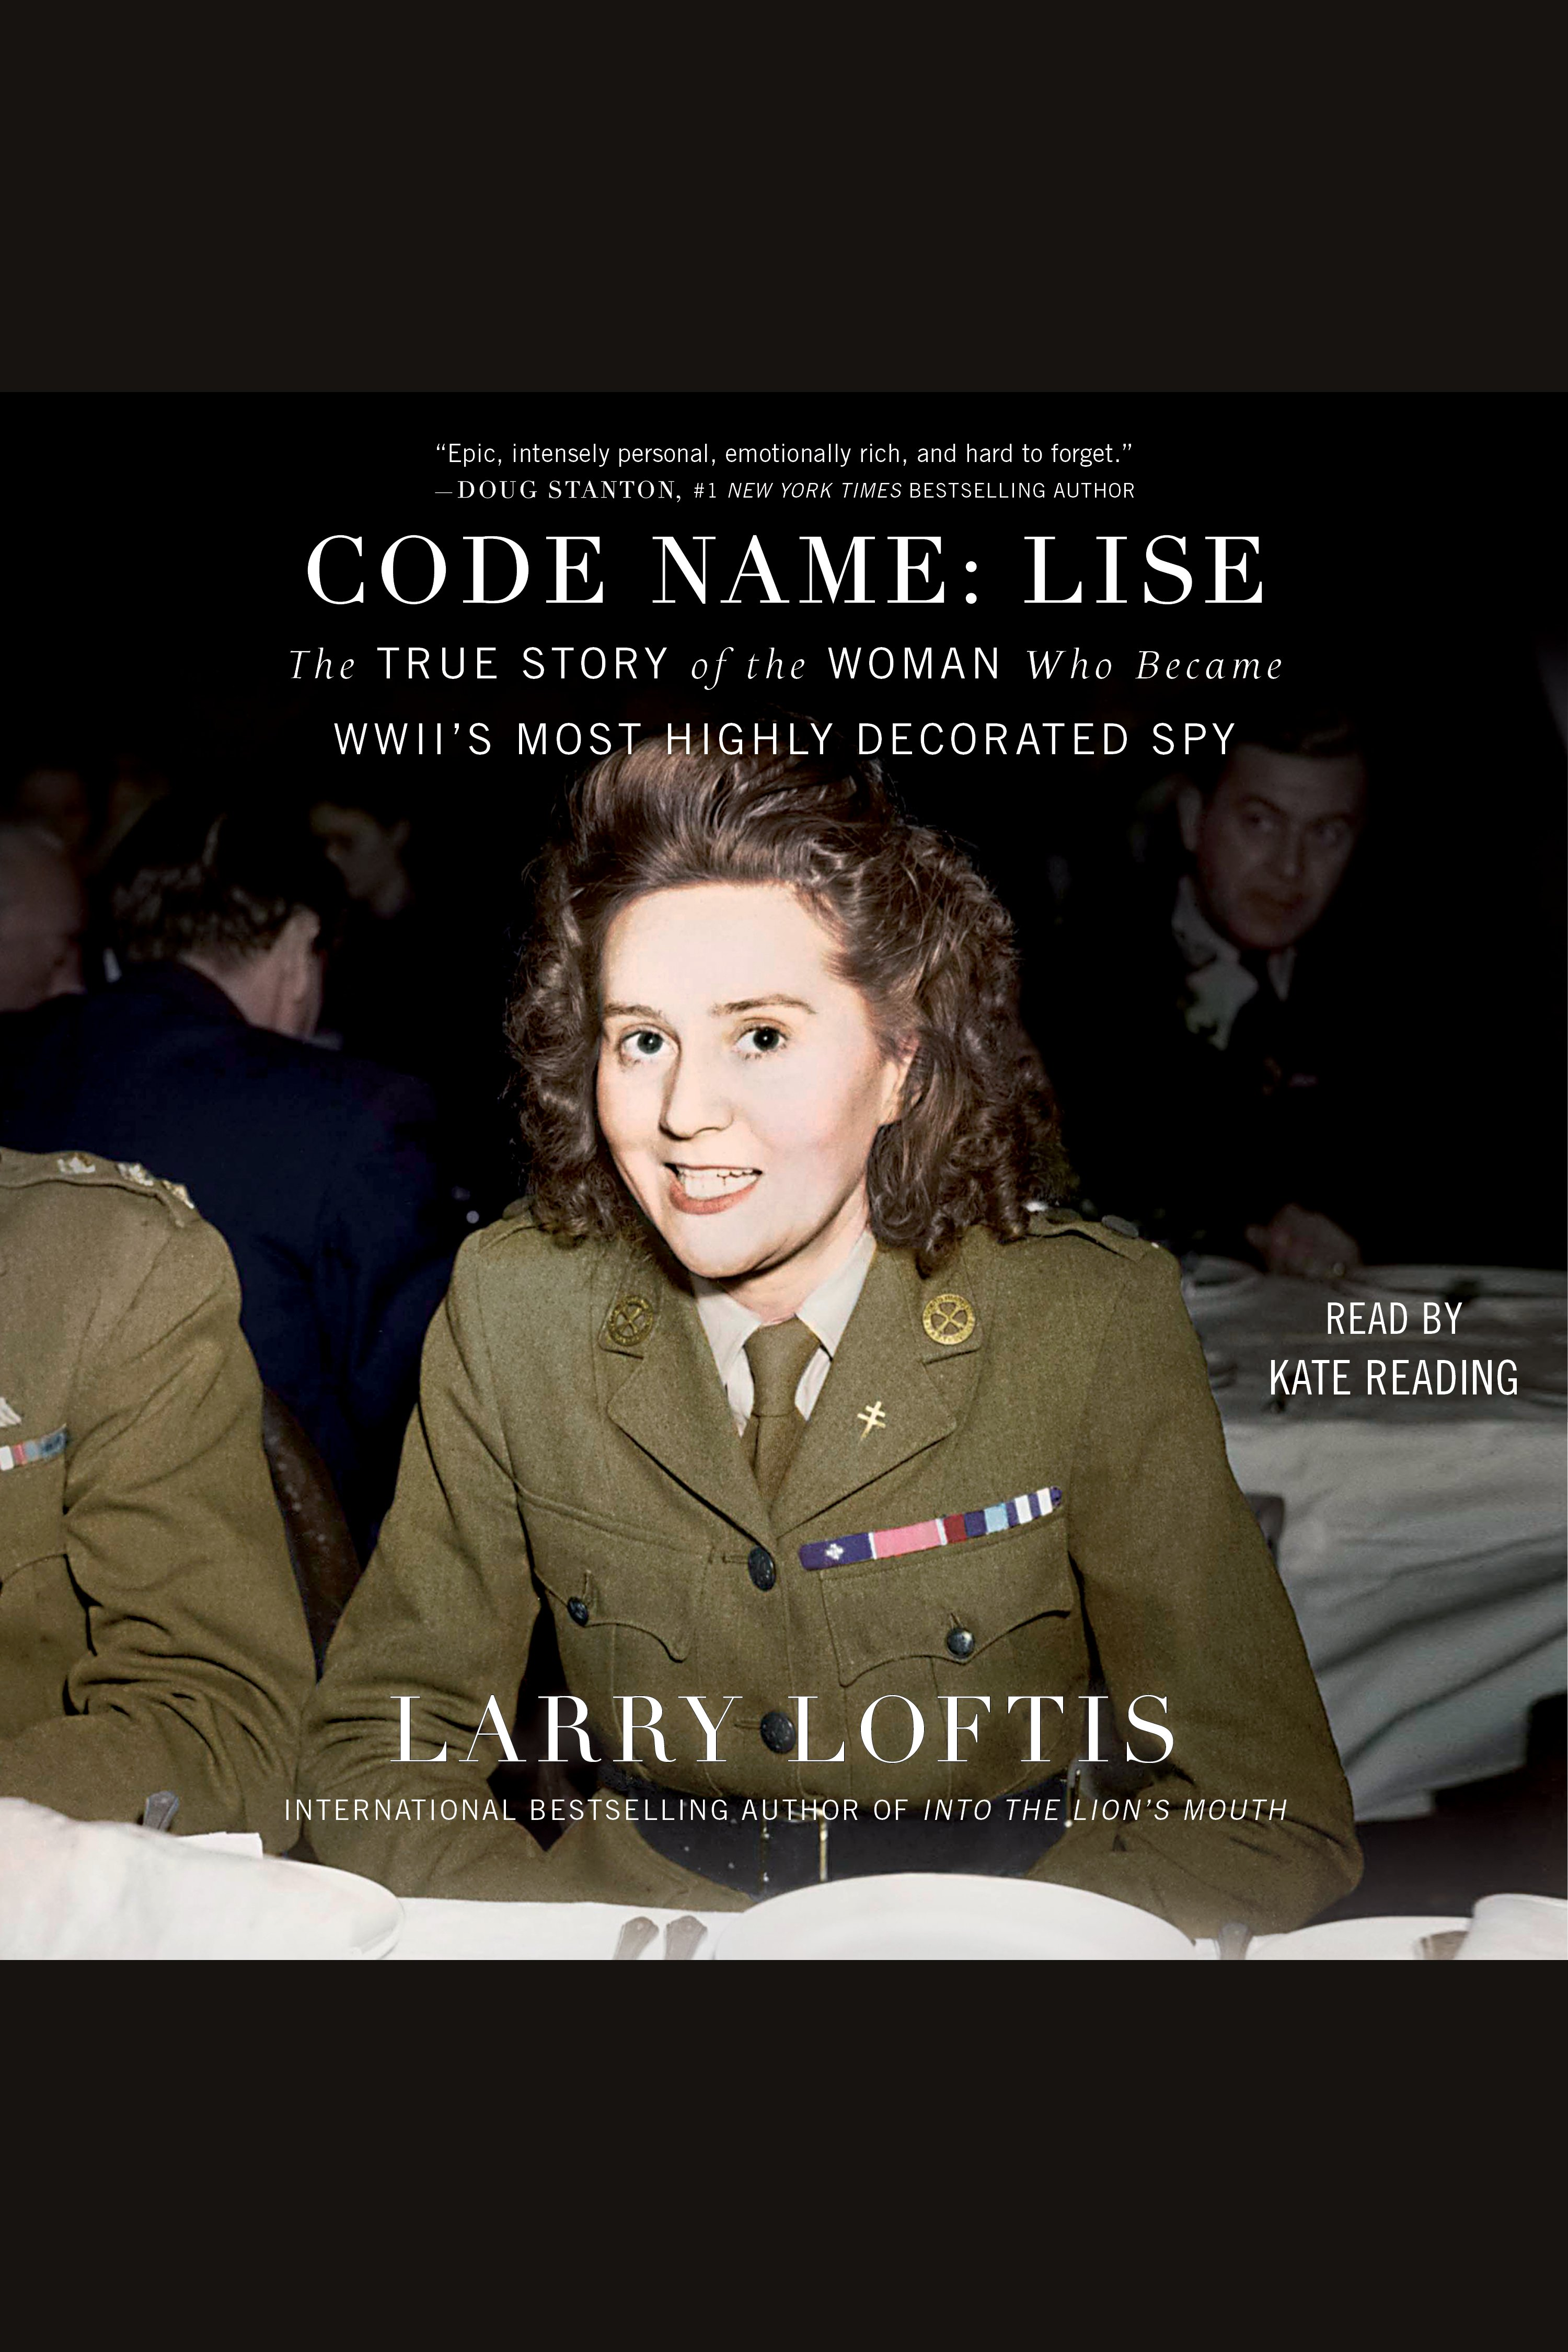 Code Name: Lise [electronic resource] : The True Story of the Spy Who Became WWII's Most Highly Decorated Woman